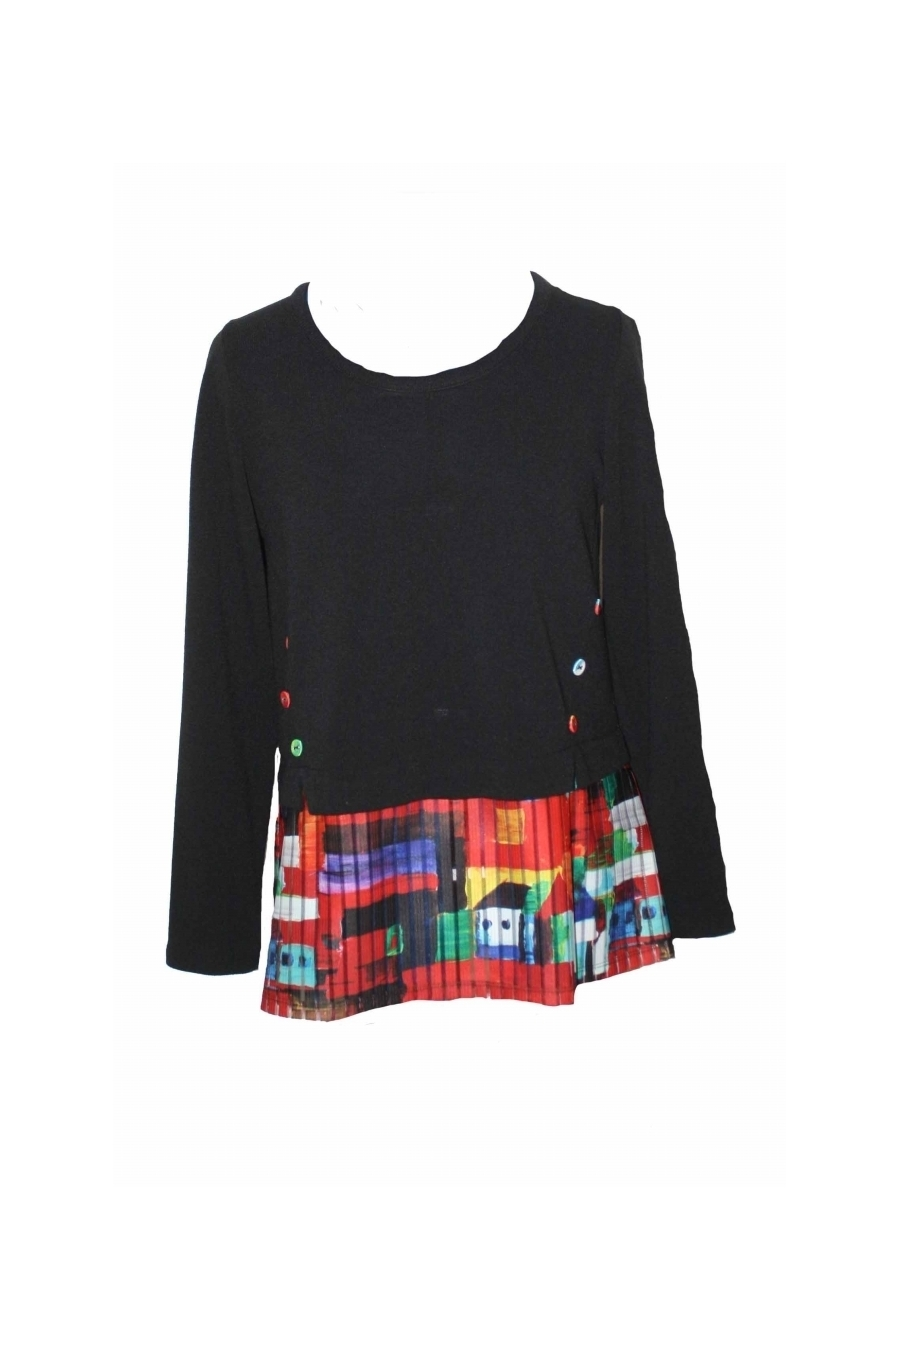 Maloka: French Fairytale Village Abstract Art Flared Sweater Tunic (More Arrived!)